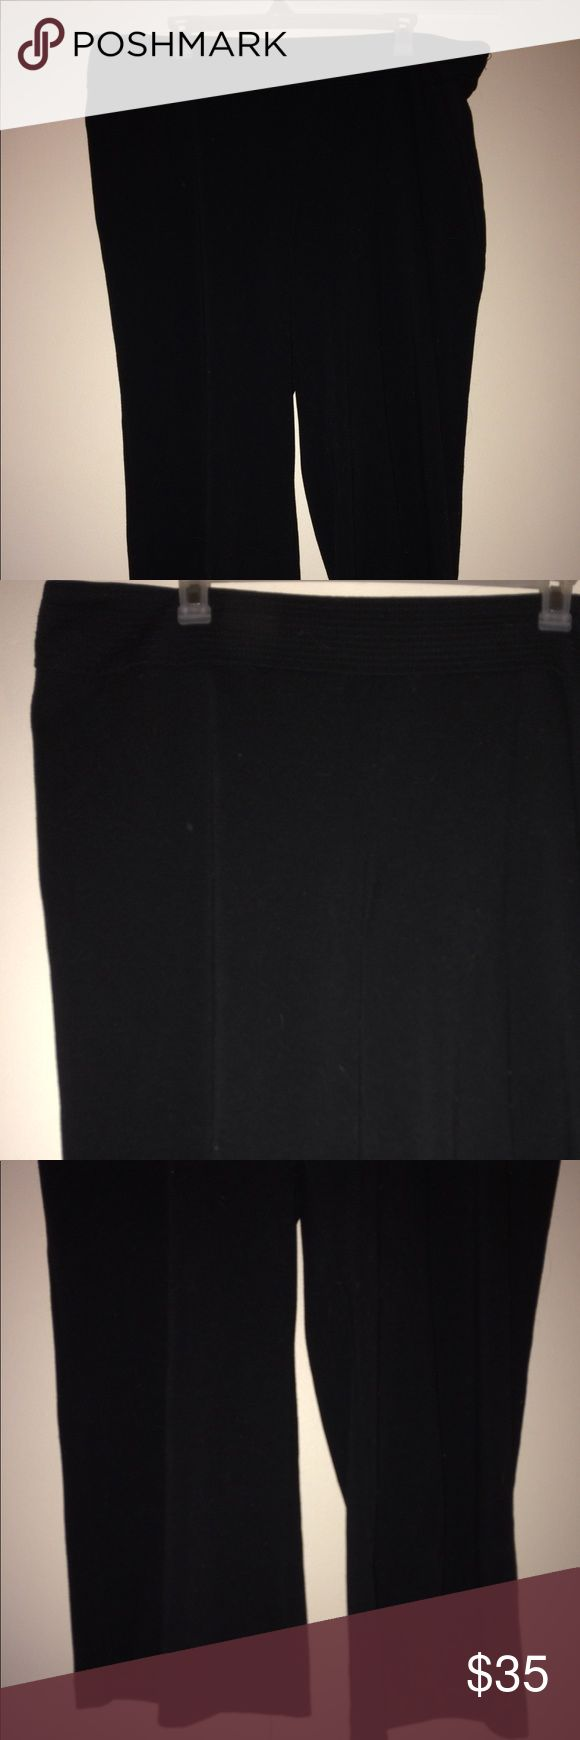 Lane Bryant Black Dress Slacks Size 22/24 Average Perfect condition! Lane Bryant Pants Trousers